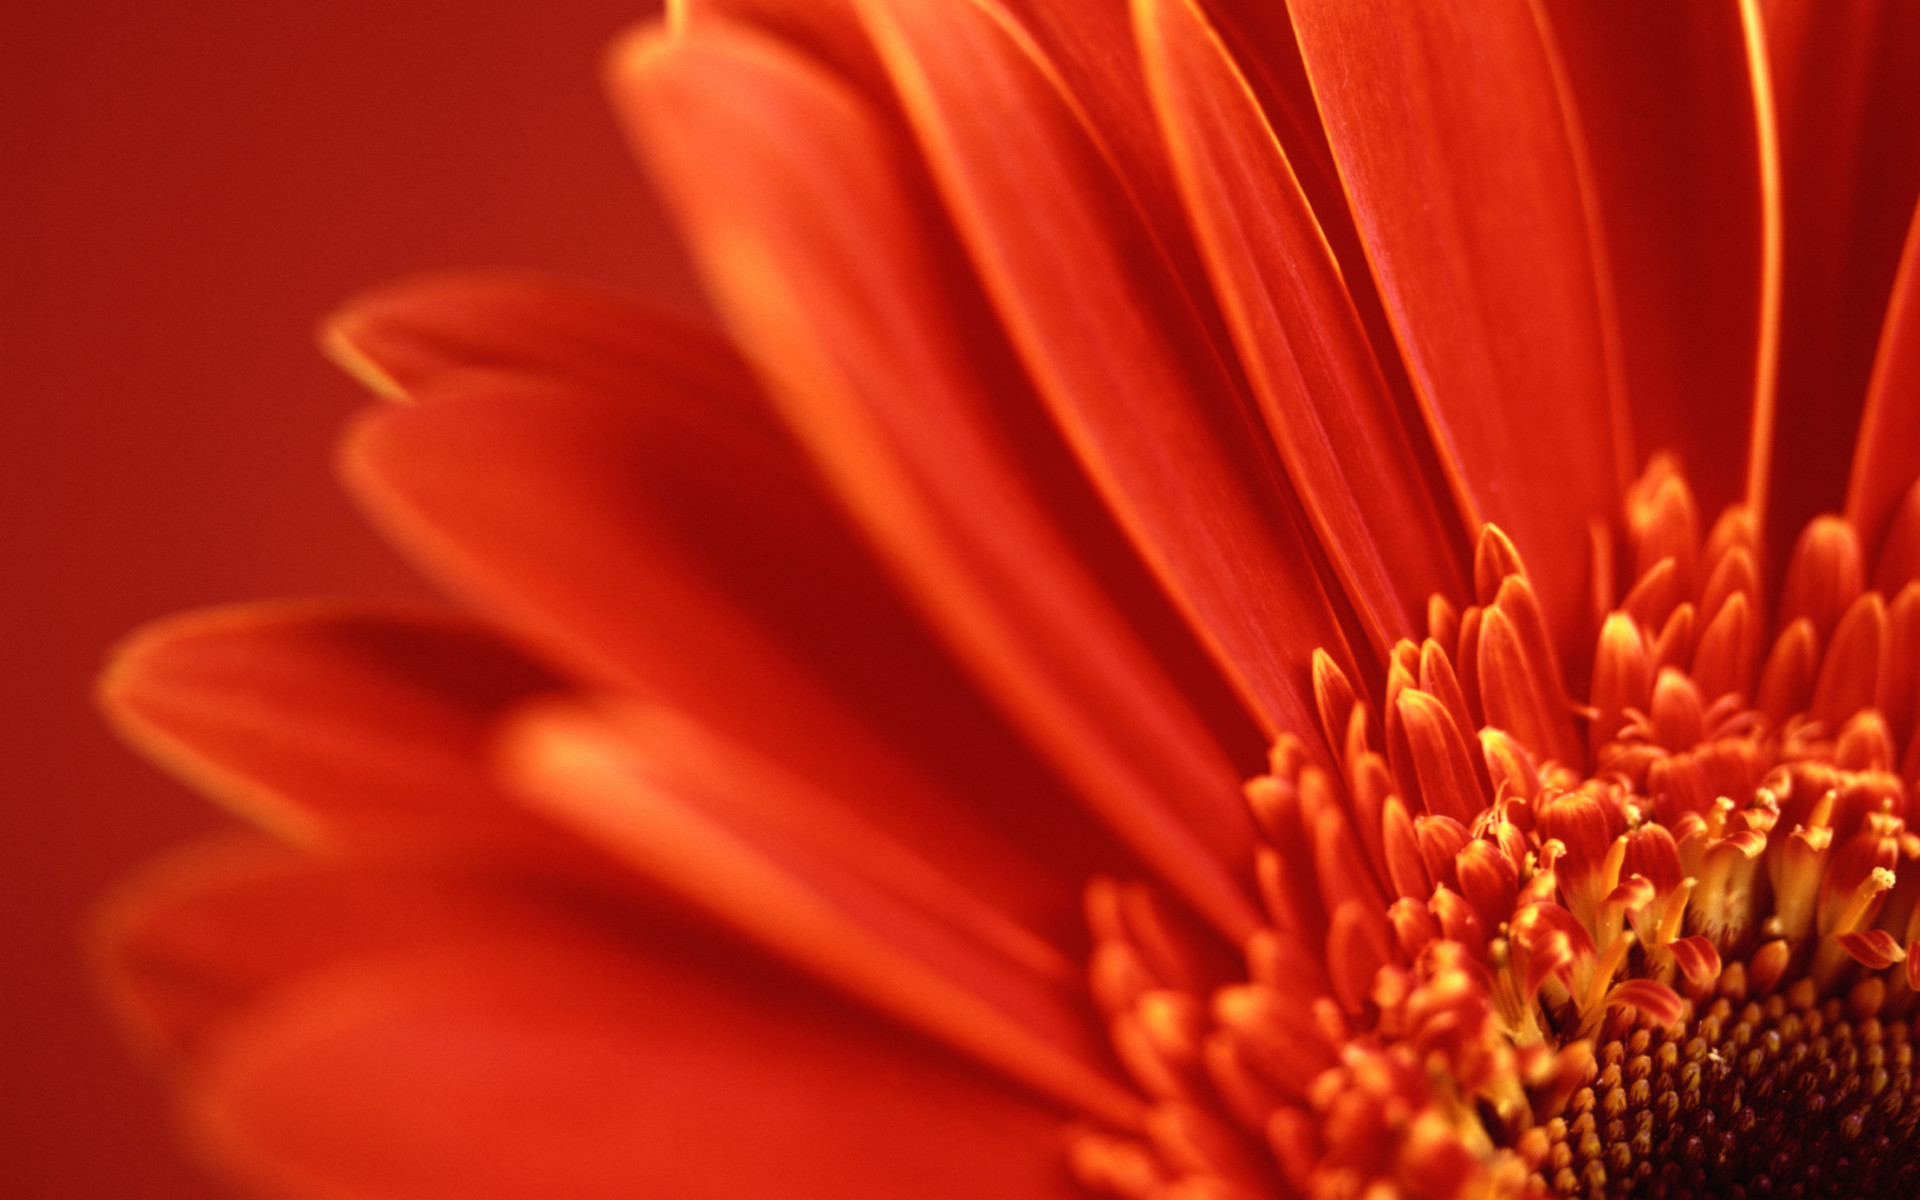 Res: 1920x1200, Red Flower Wallpaper